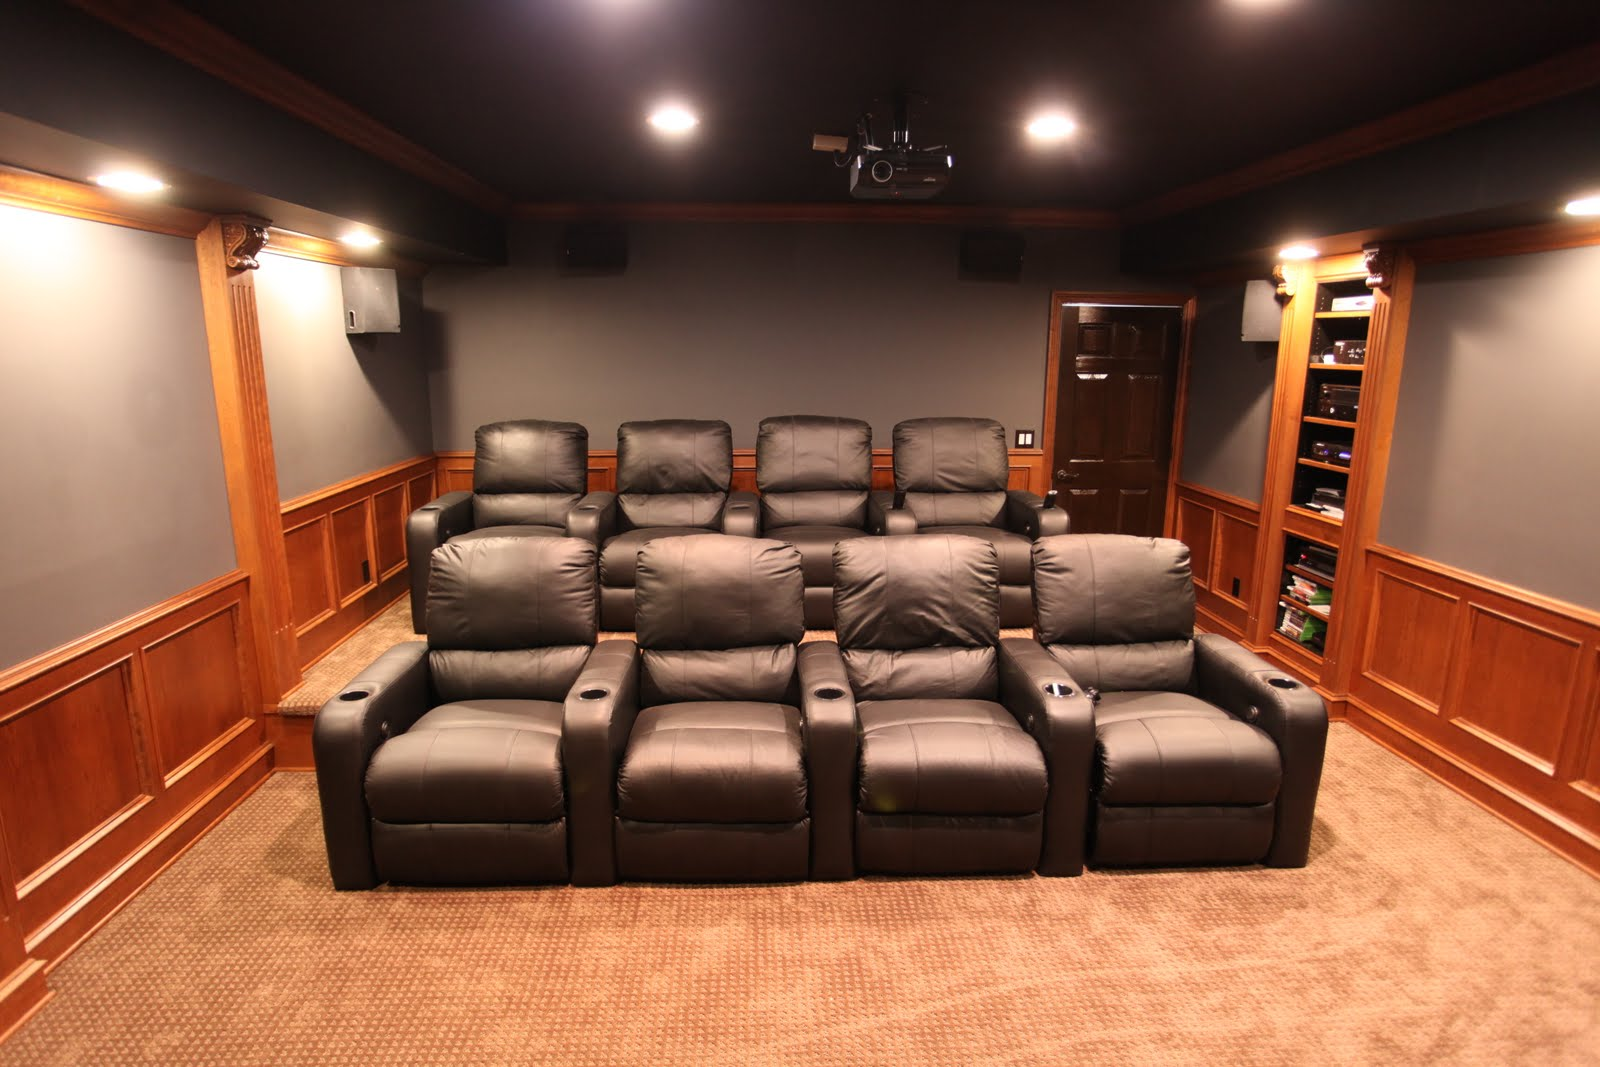 10 X 10 Home Theater Room